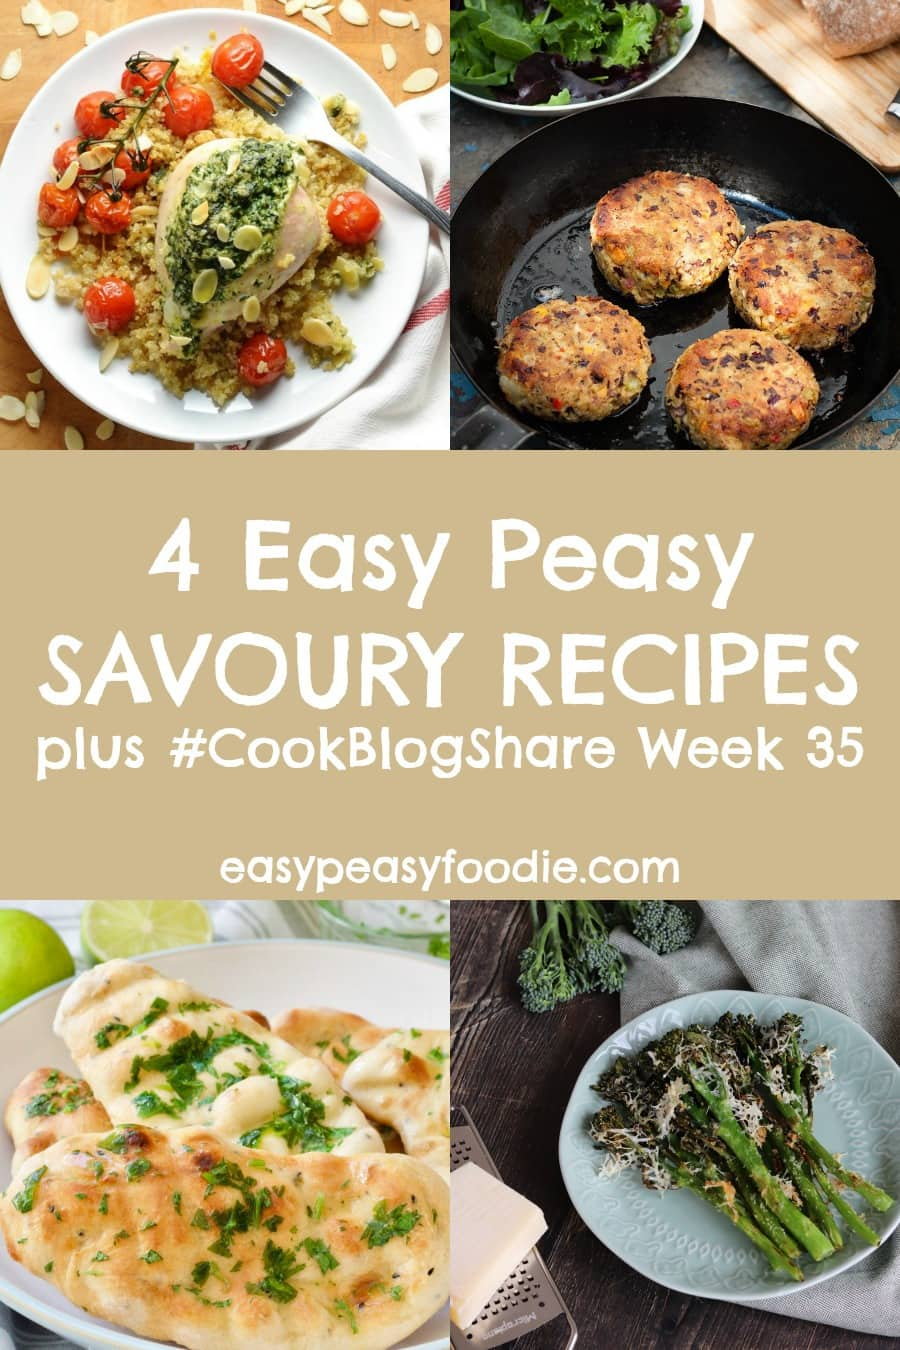 This week I am showcasing 4 delicious and very easy savoury recipes in my CookBlogShare roundup, as well as sharing the linky for #CookBlogShare week 35.